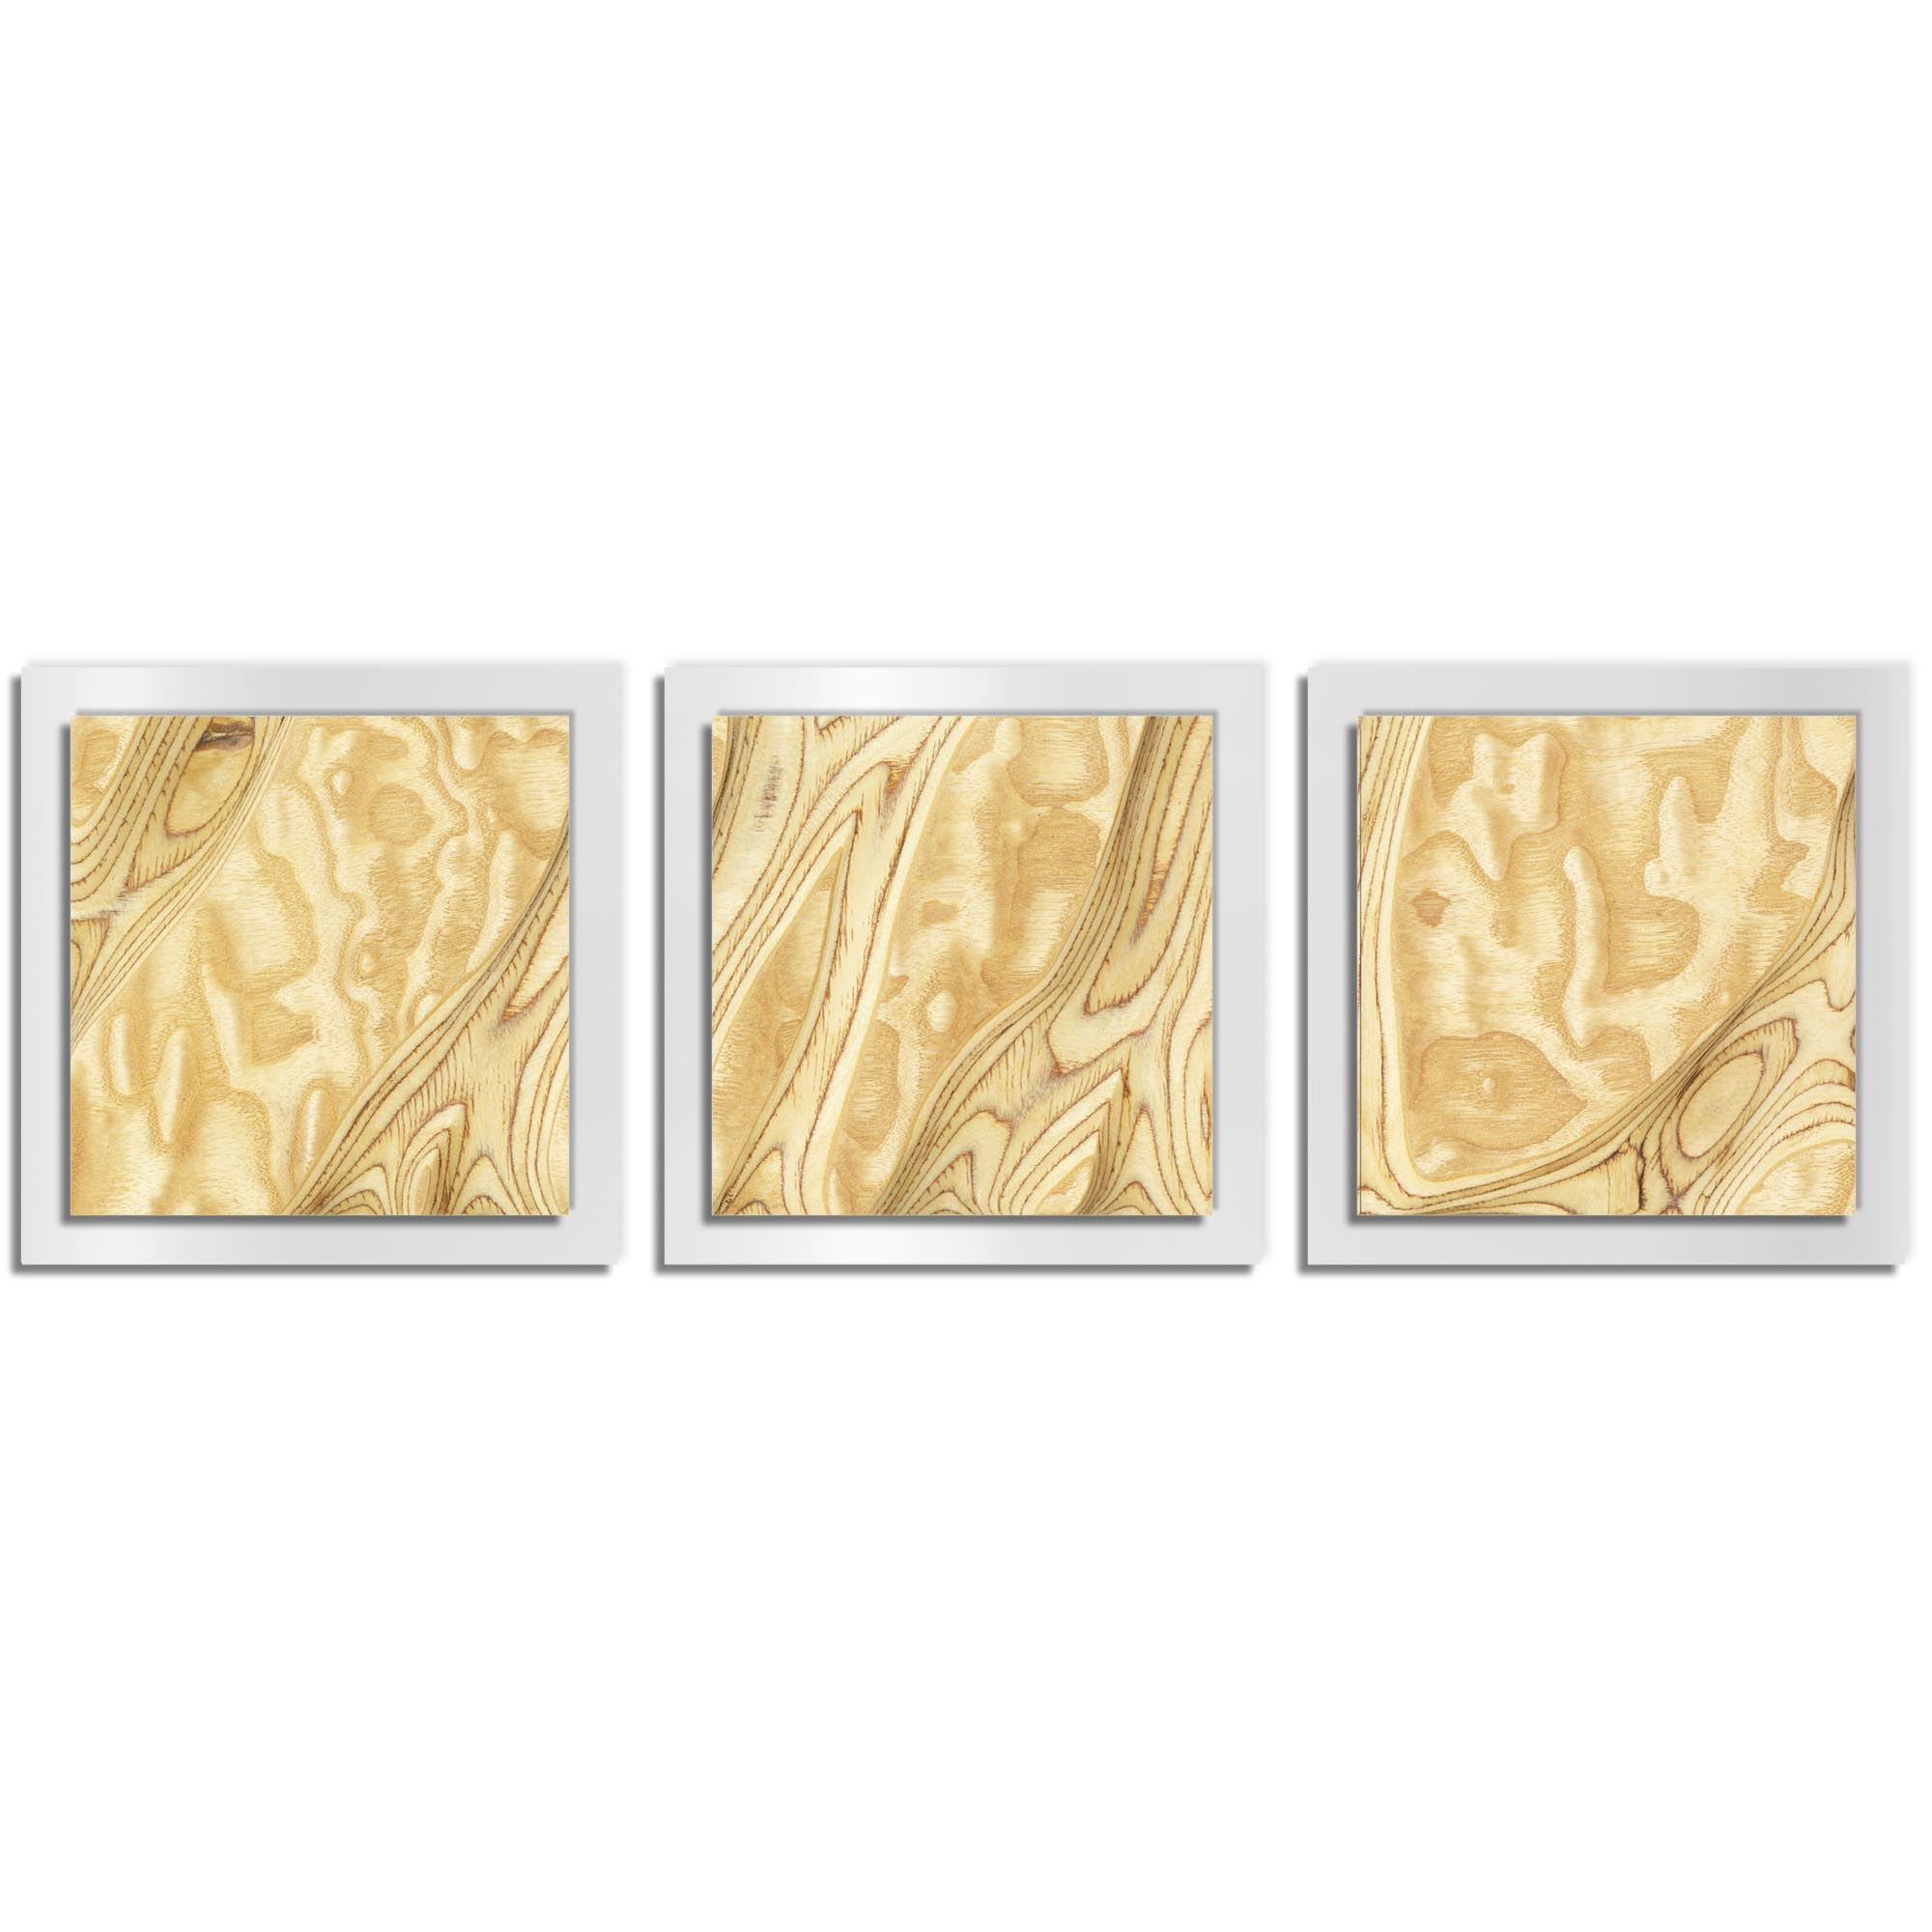 Jackson Wright 'Natural Burl Essence White' 38in x 12in Contemporary Style Wood Wall Art